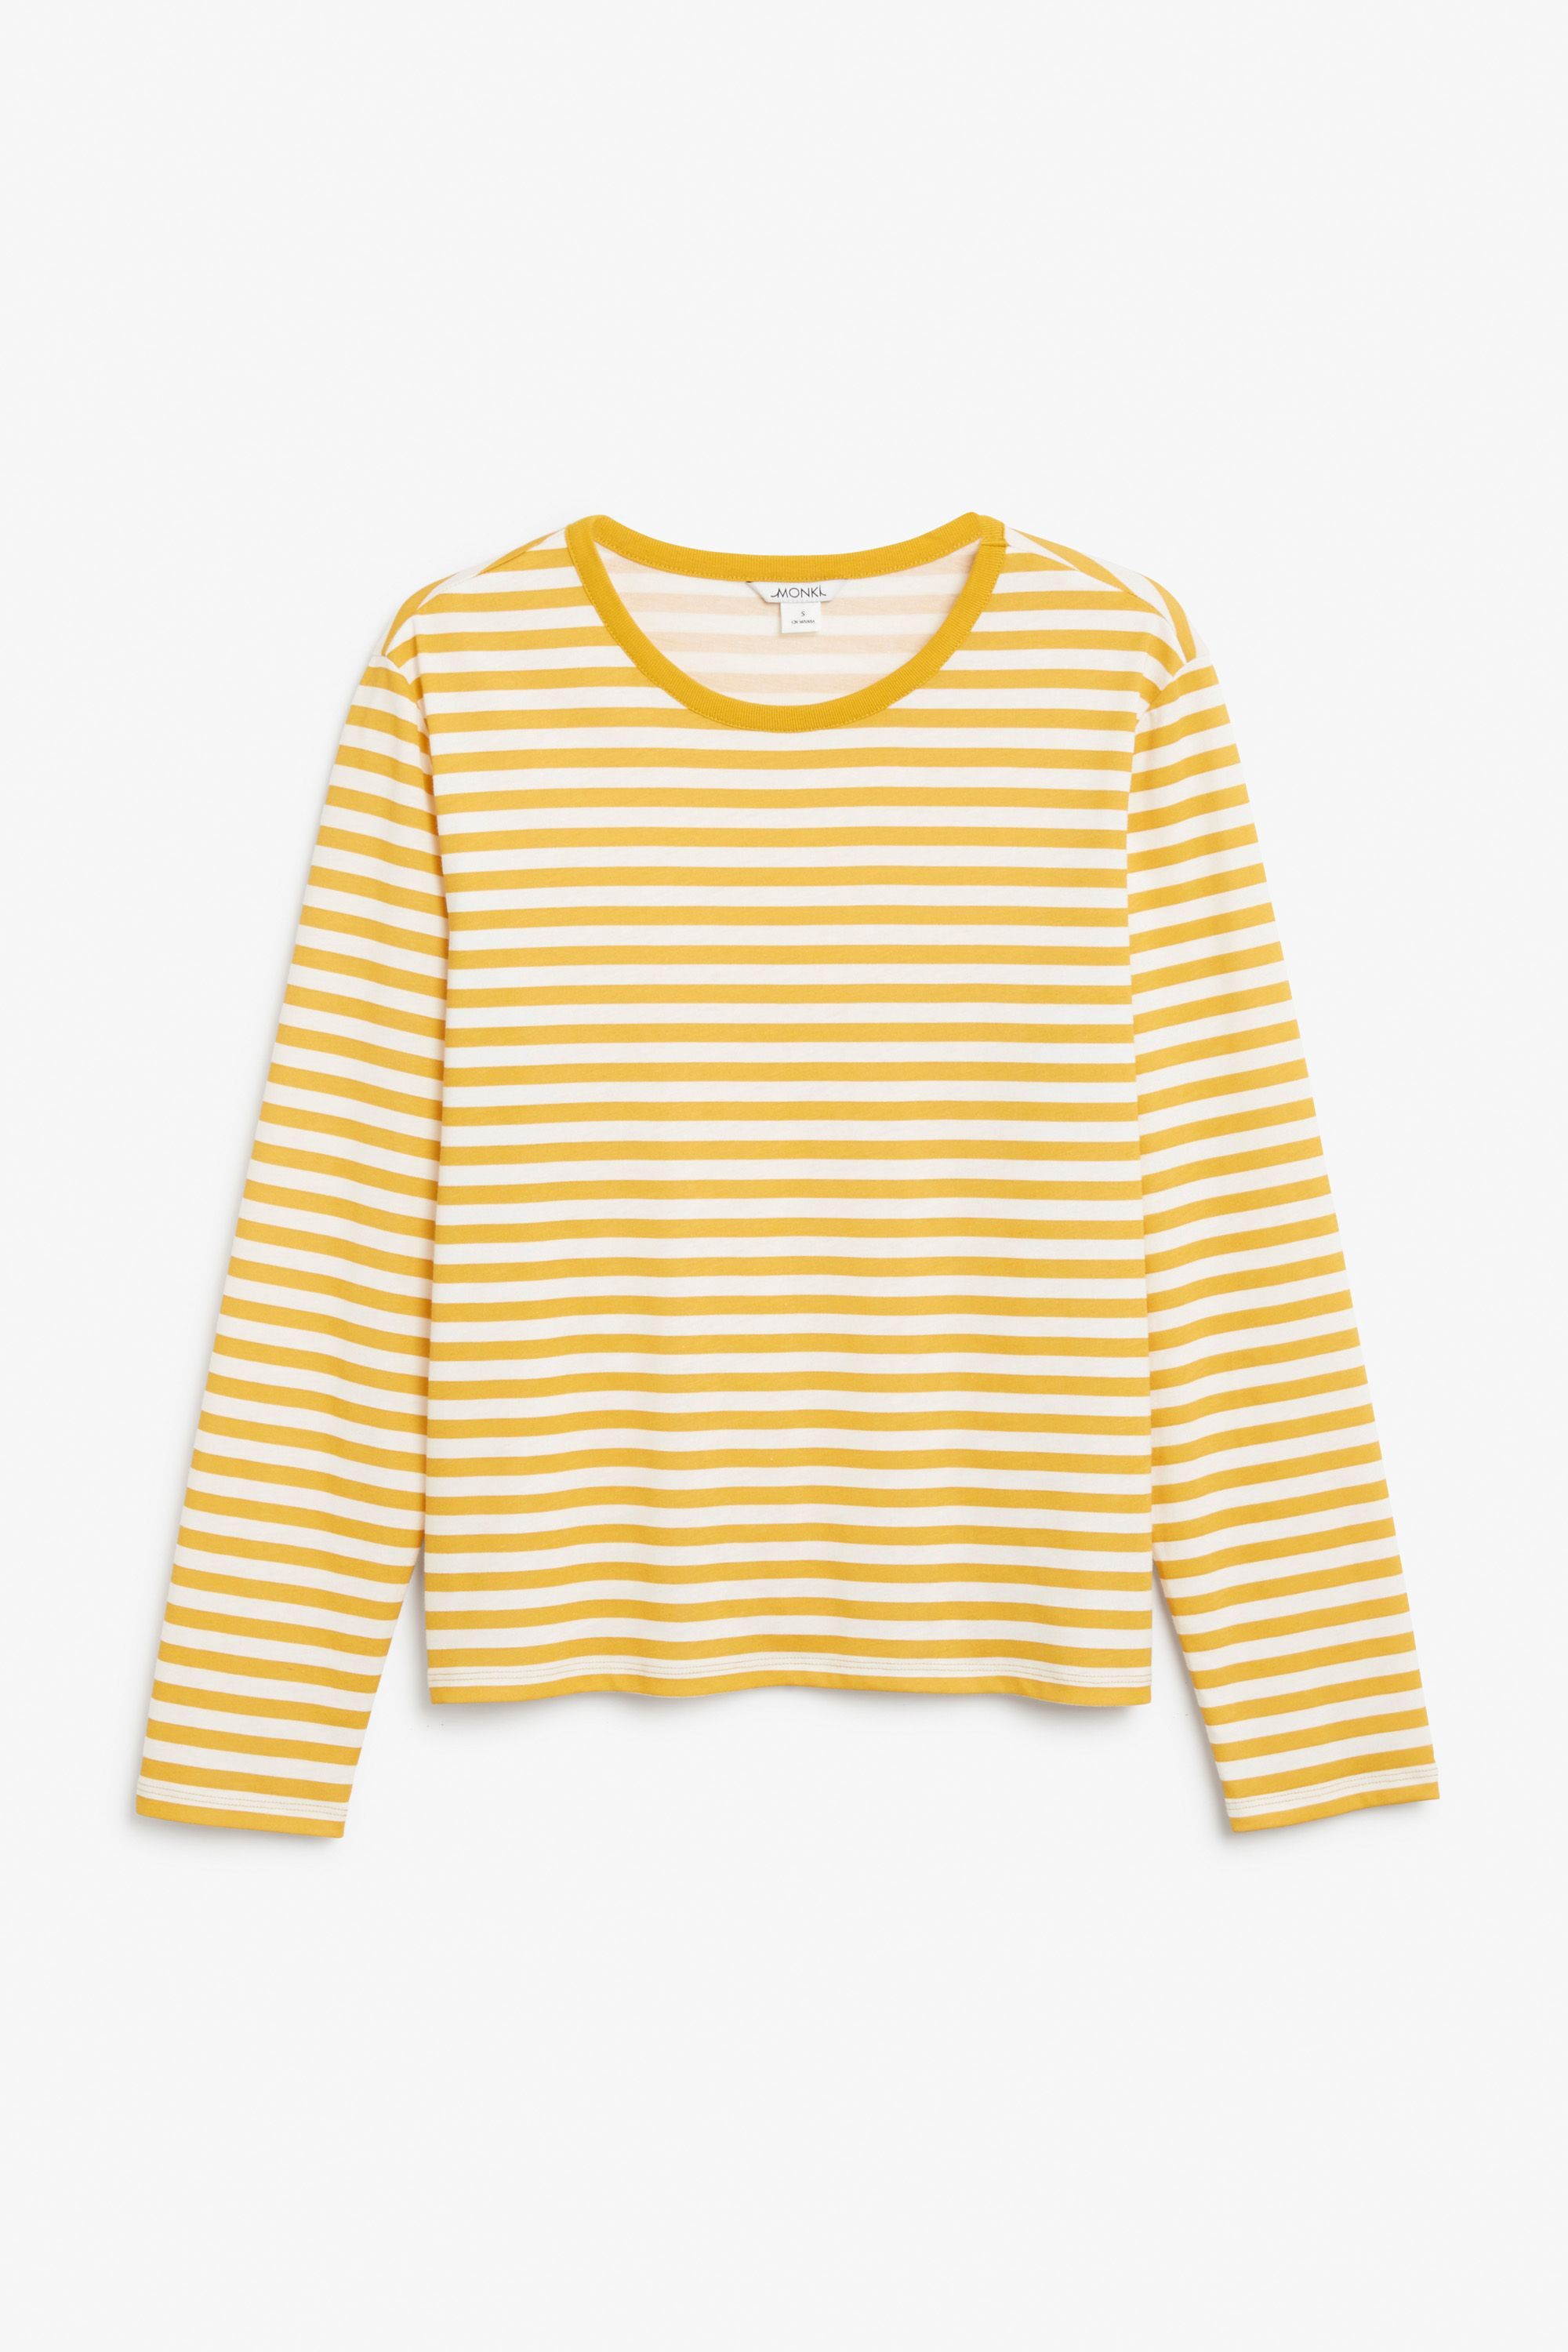 ac3a77de714cca Monki Soft long-sleeved top in Yellow Reddish